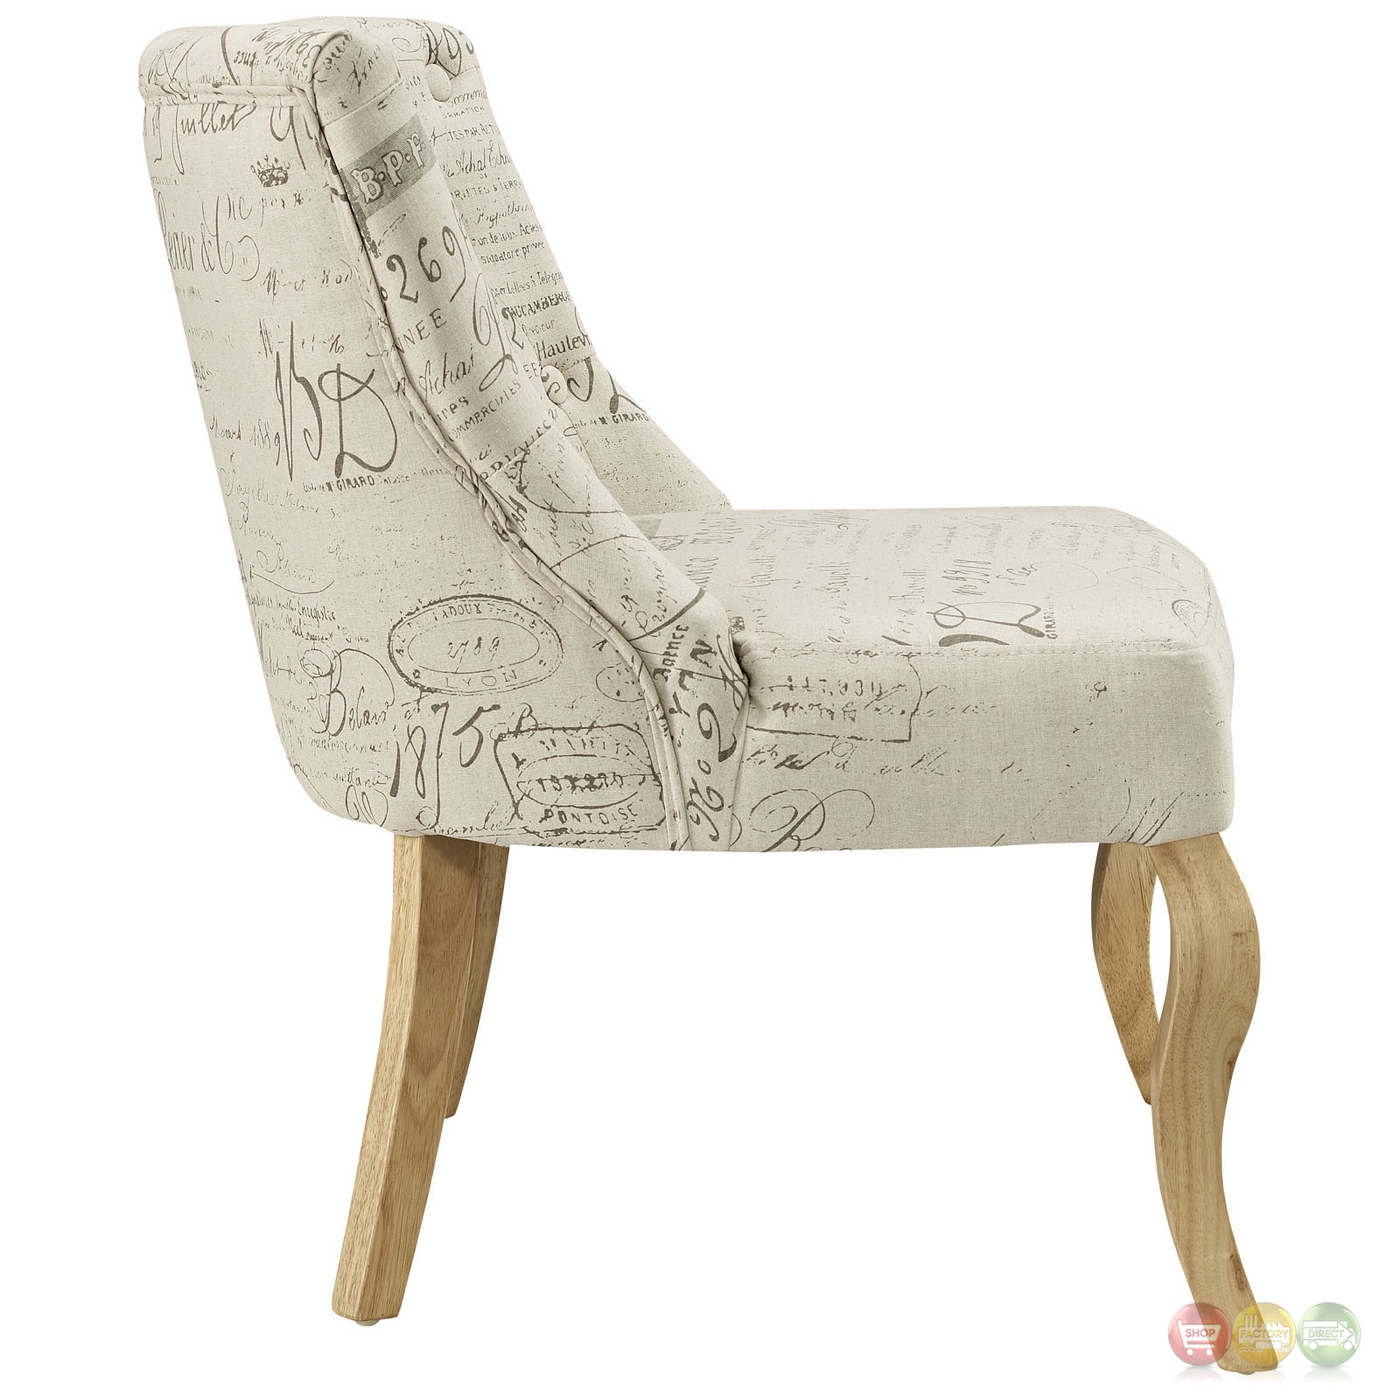 Superb img of  French inspired Patterned Accent Chair With Curved Wood Legs White with #A3282A color and 1400x1400 pixels